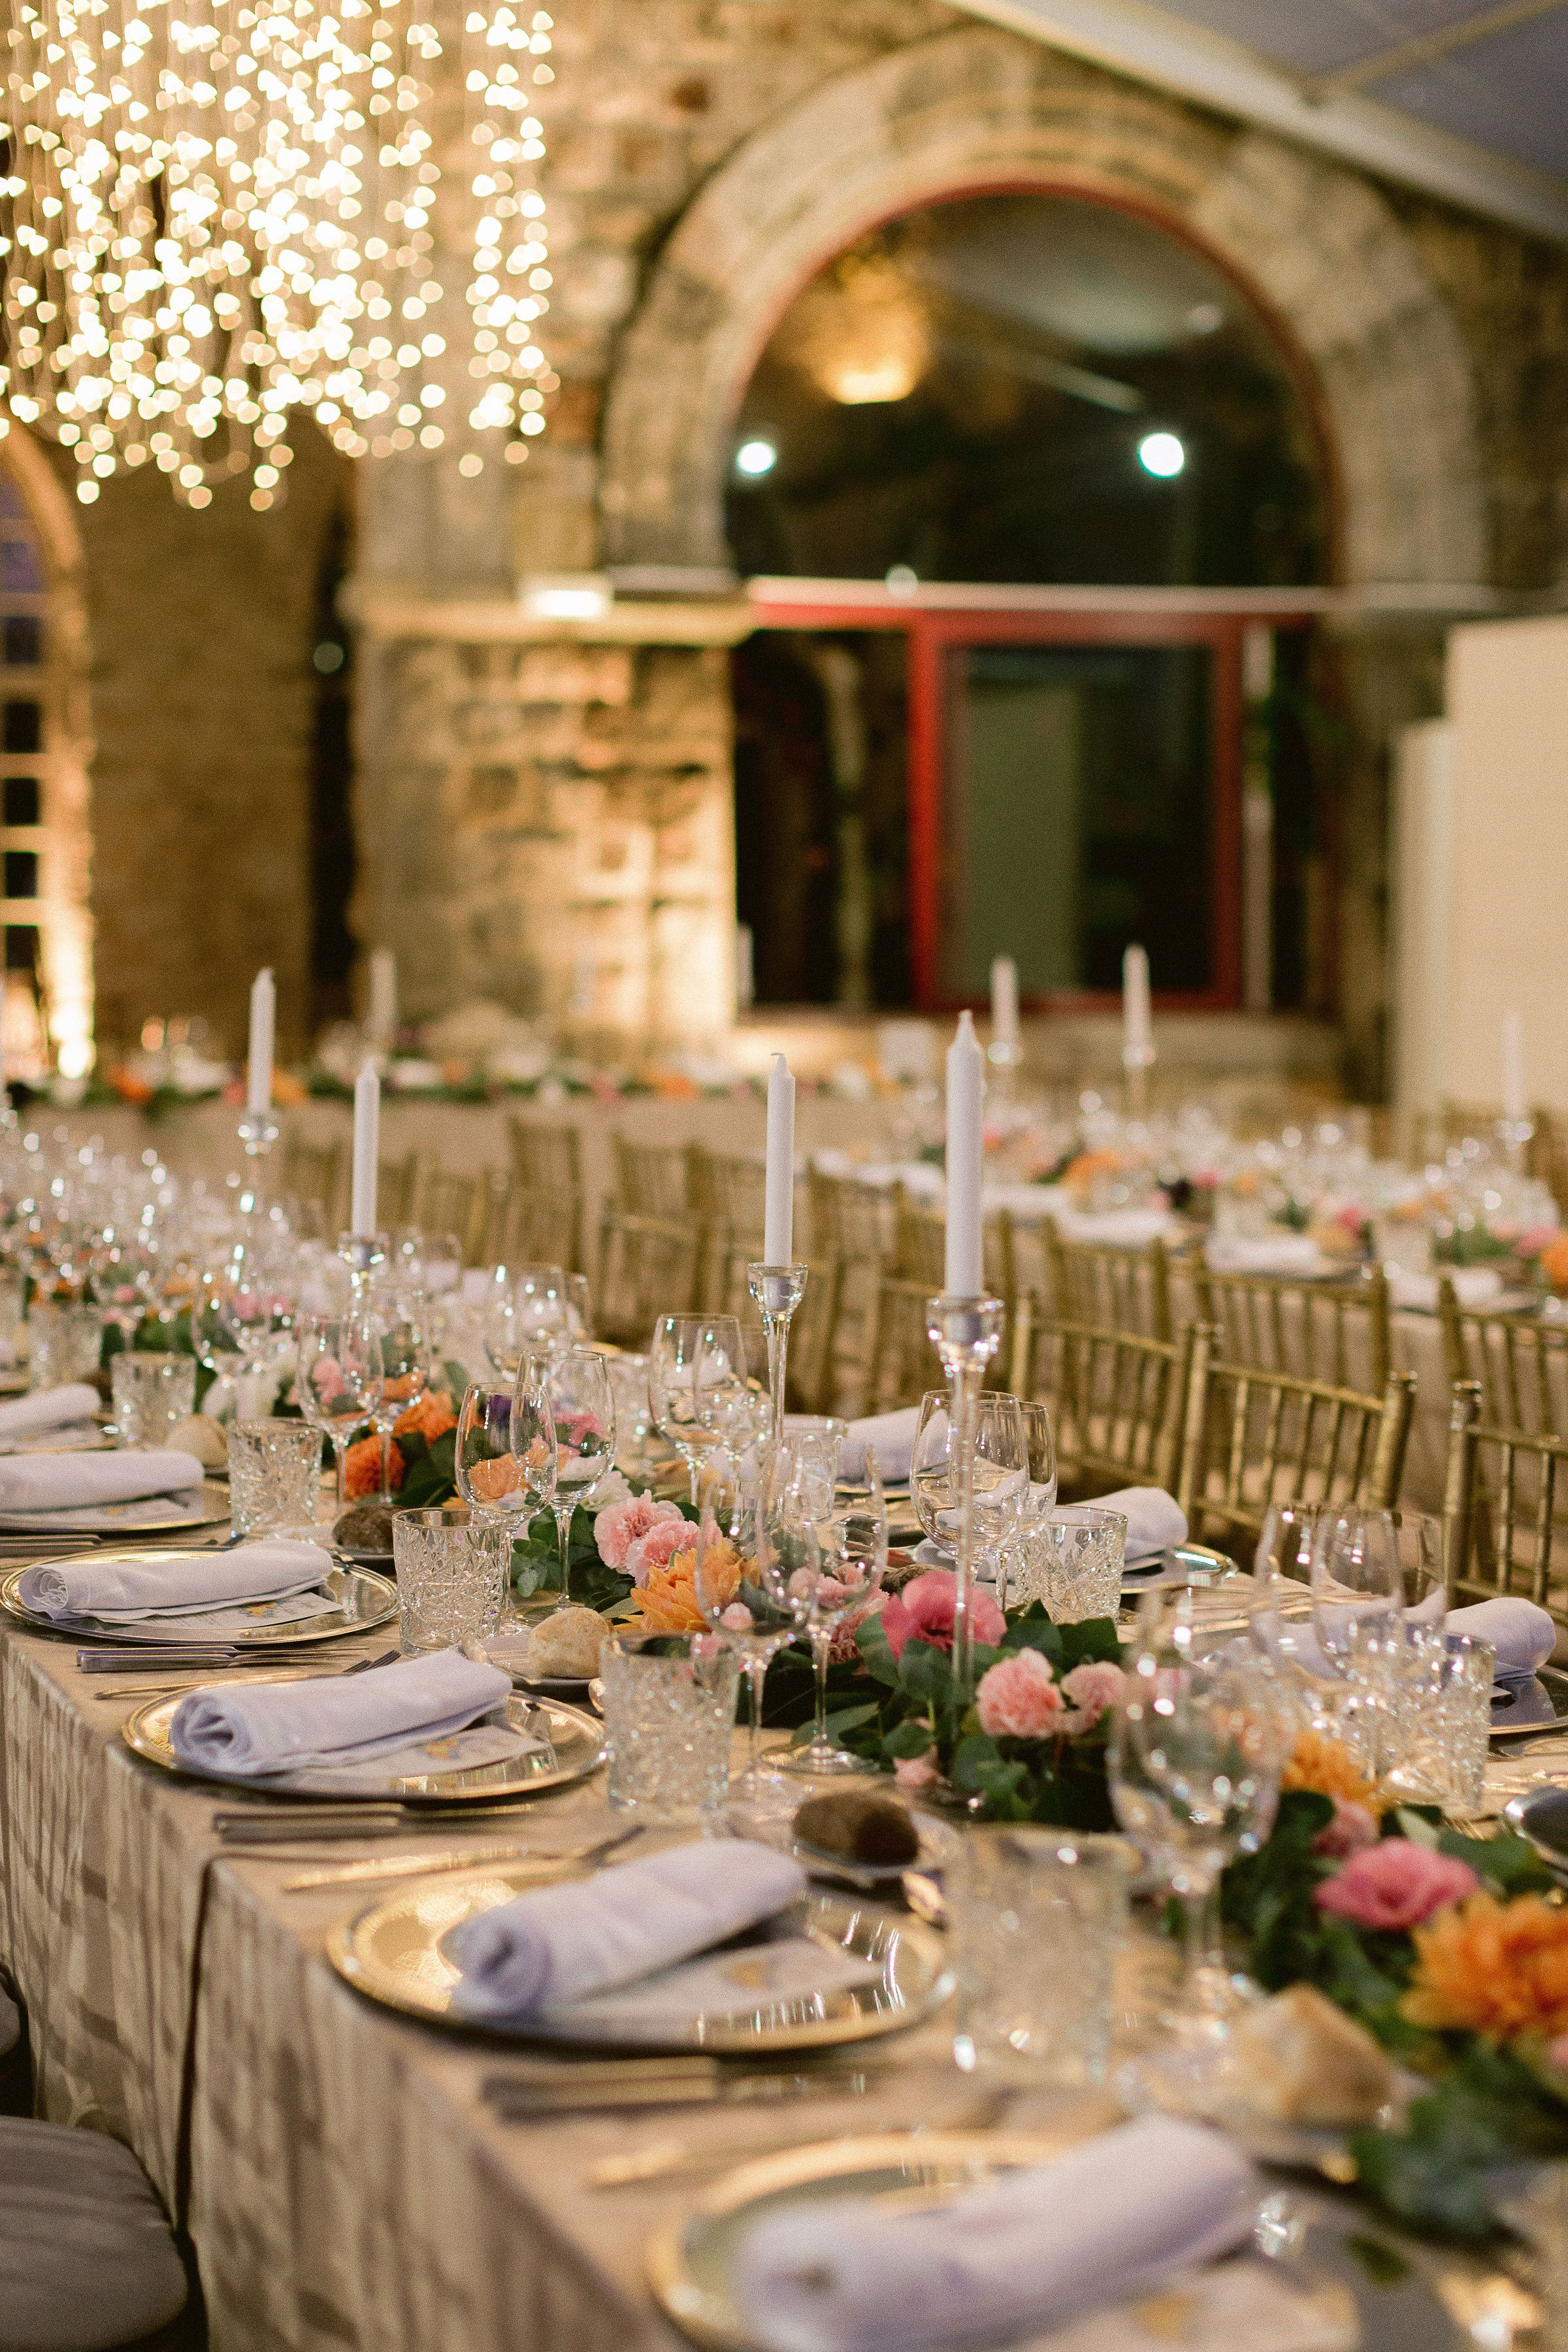 Wedding Reception At Forte Da Cruz In Portugal By Lisbon Wedding Planner In 2020 Lisbon Wedding Destination Wedding Venues Long Table Wedding